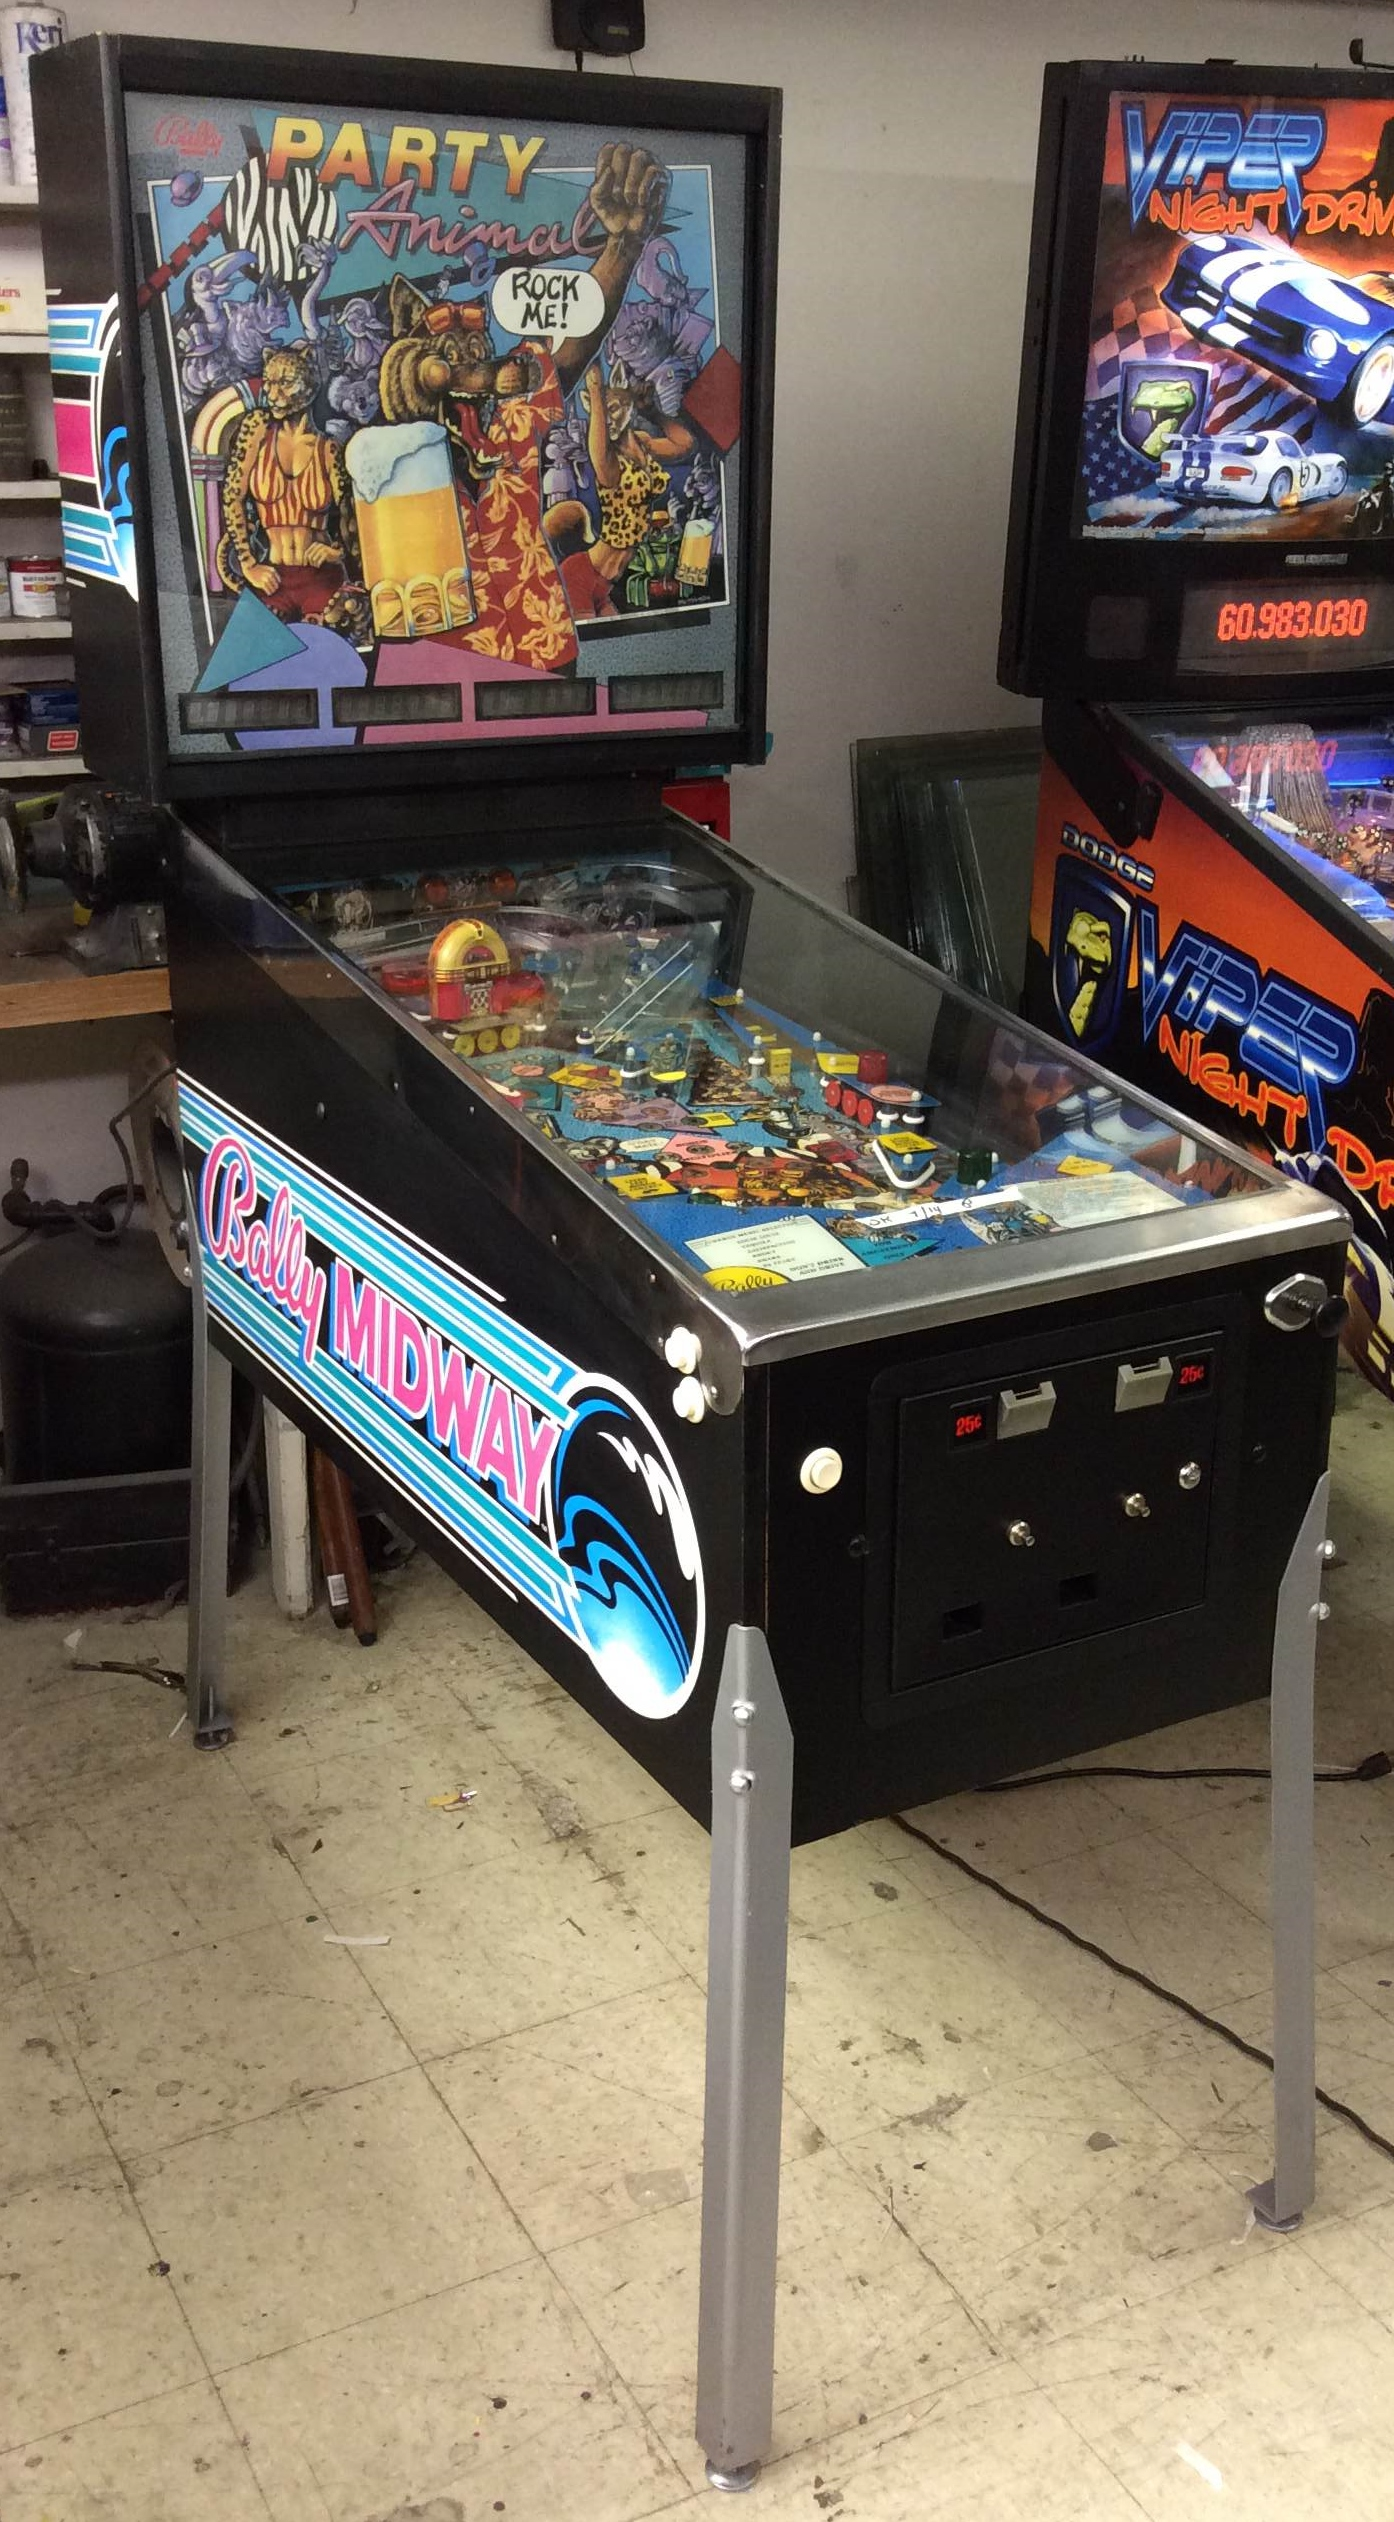 PARTY ANIMAL Pinball Machine Game for sale by BALLY LET S PARTY